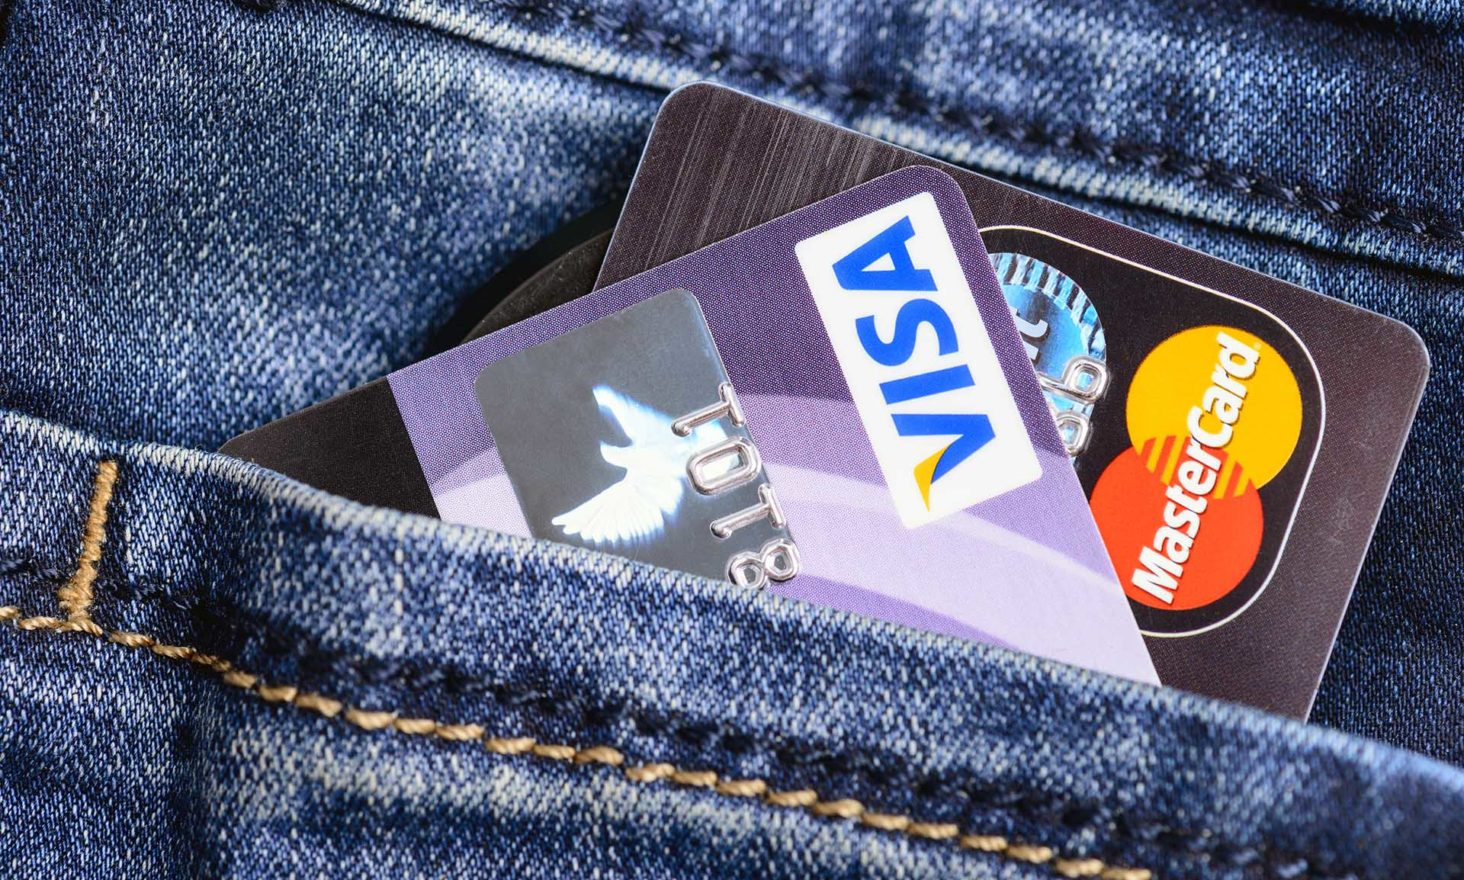 Fearing Bitcoin, VISA and Mastercard Reclassify Crypto Purchases as 'Cash Advances'